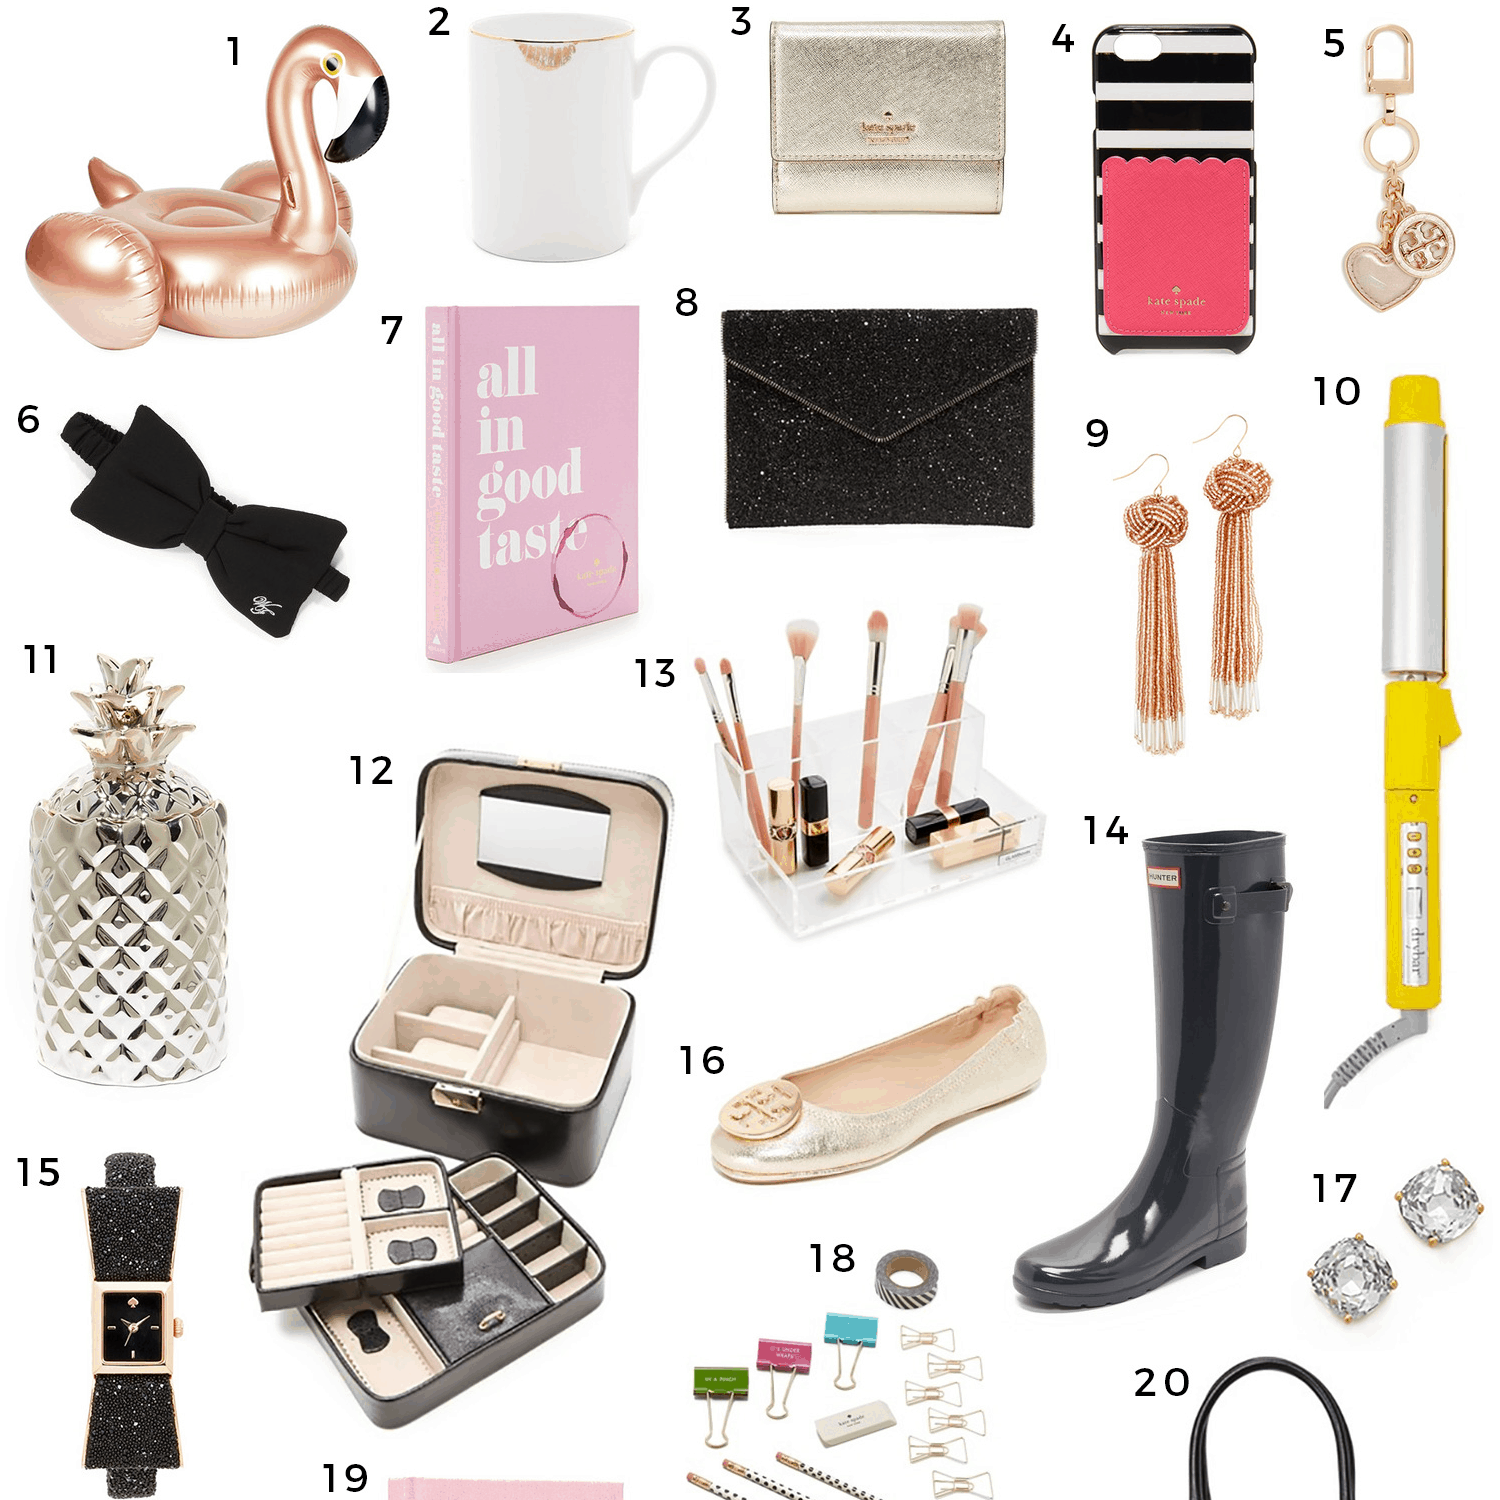 Best Christmas Gift Ideas: The Best Christmas Gift Ideas For Women Under $50